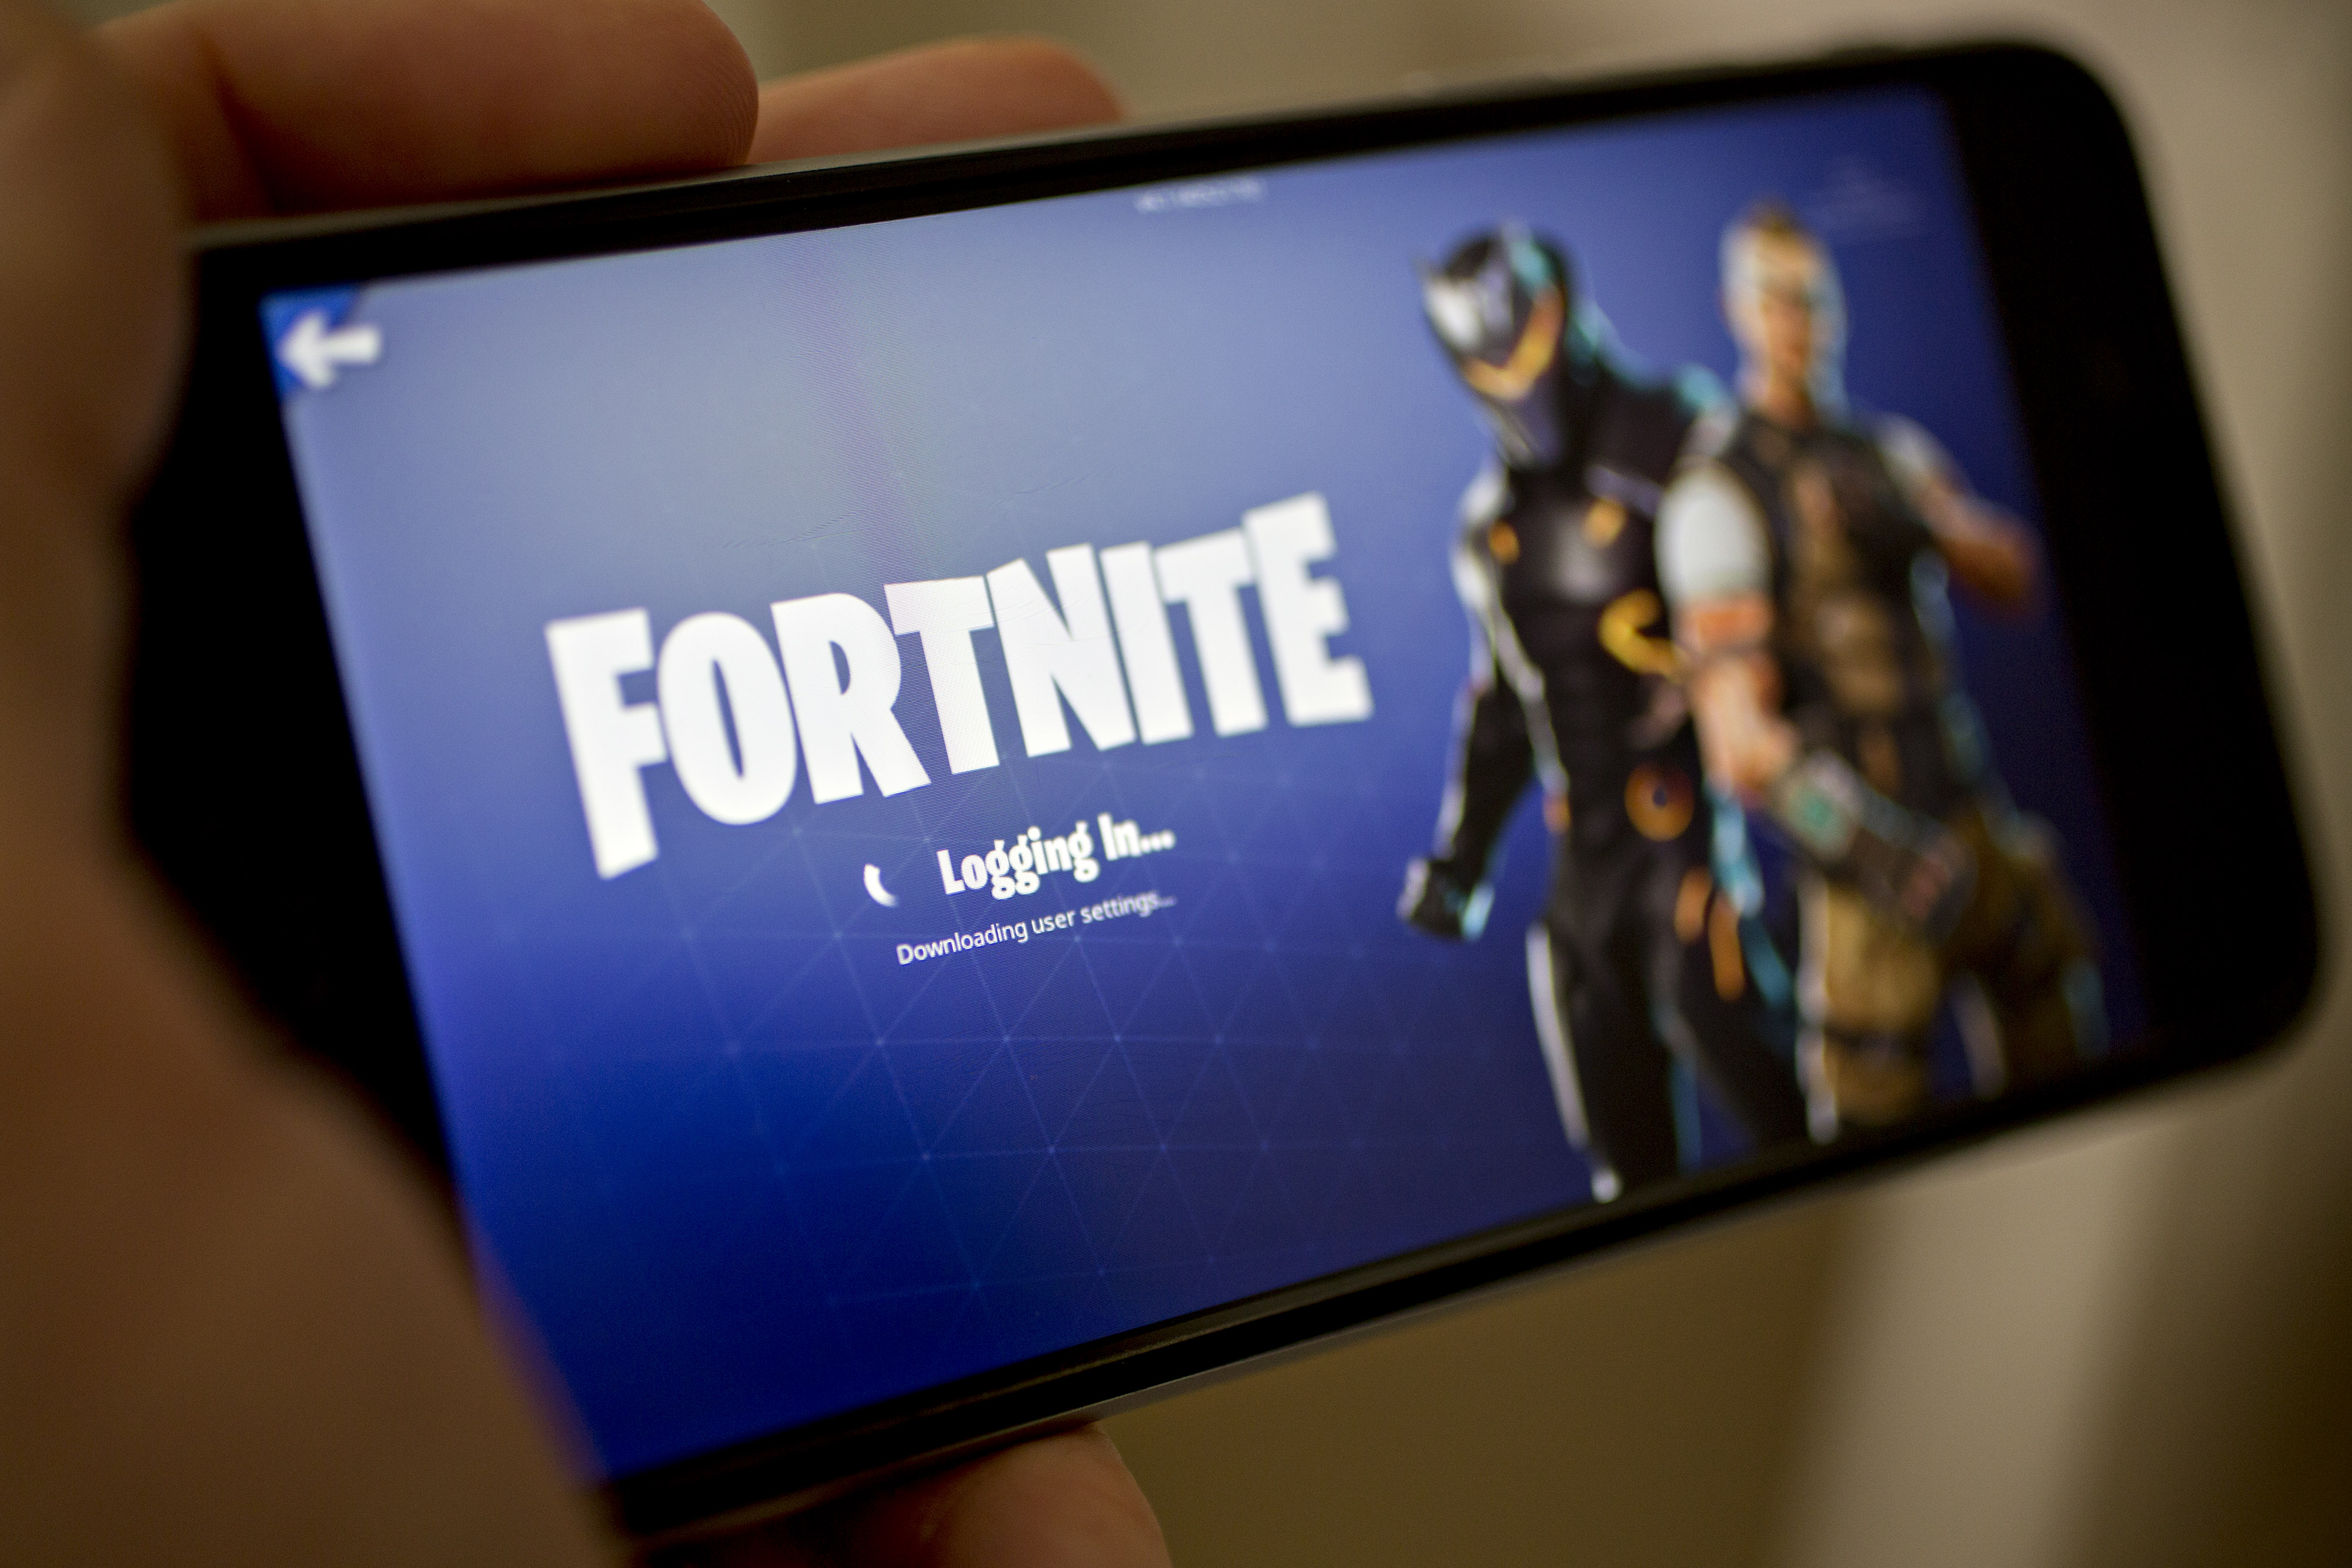 The Fortnite Battle Royale video game is displayed on an iPhone.